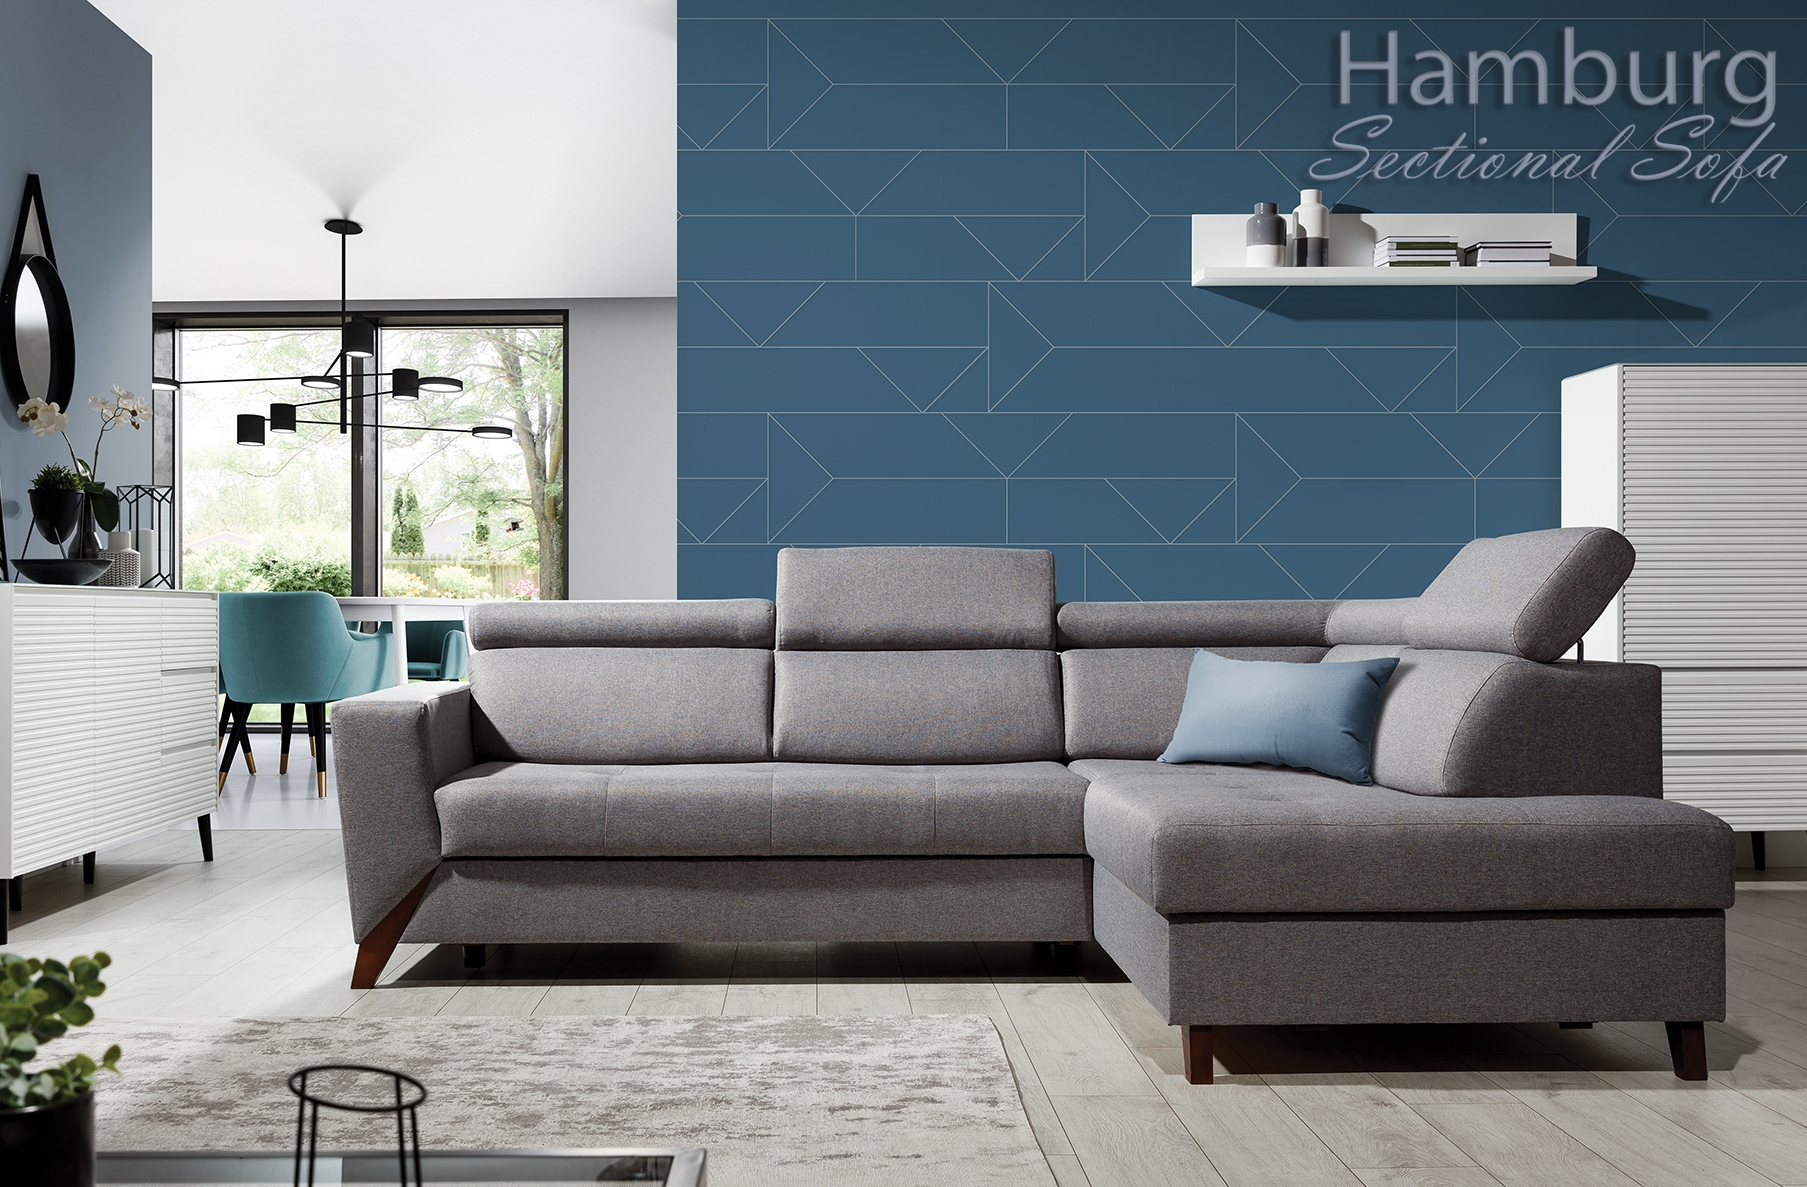 Sofa Hamburg Hamburg Functional Sectional - Nordholtz Furniture